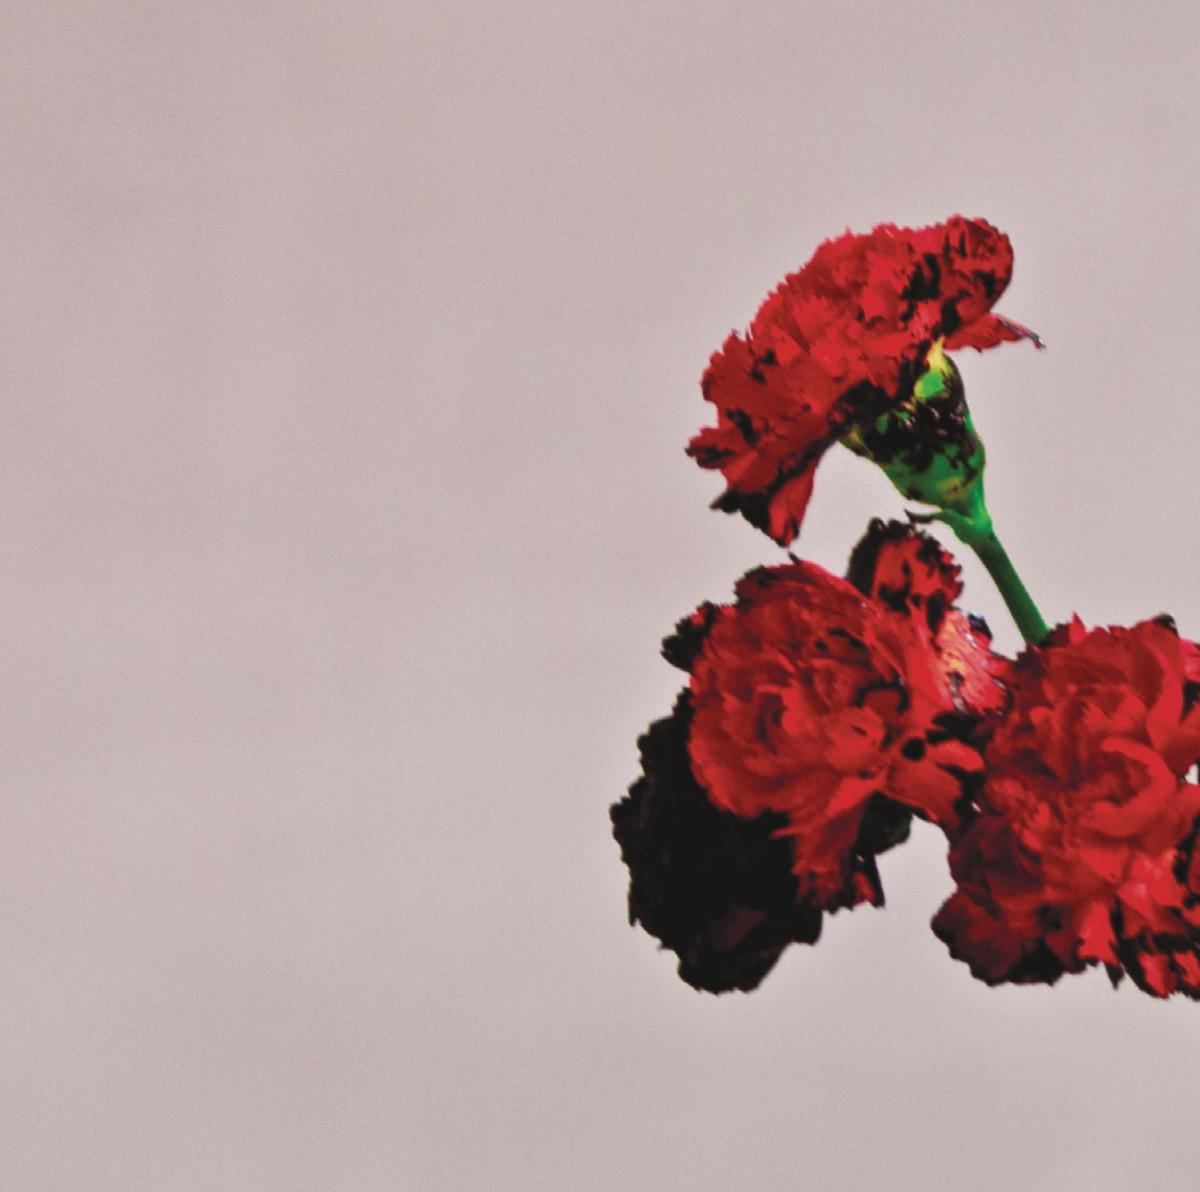 You & I (Nobody In The World) by John Legend